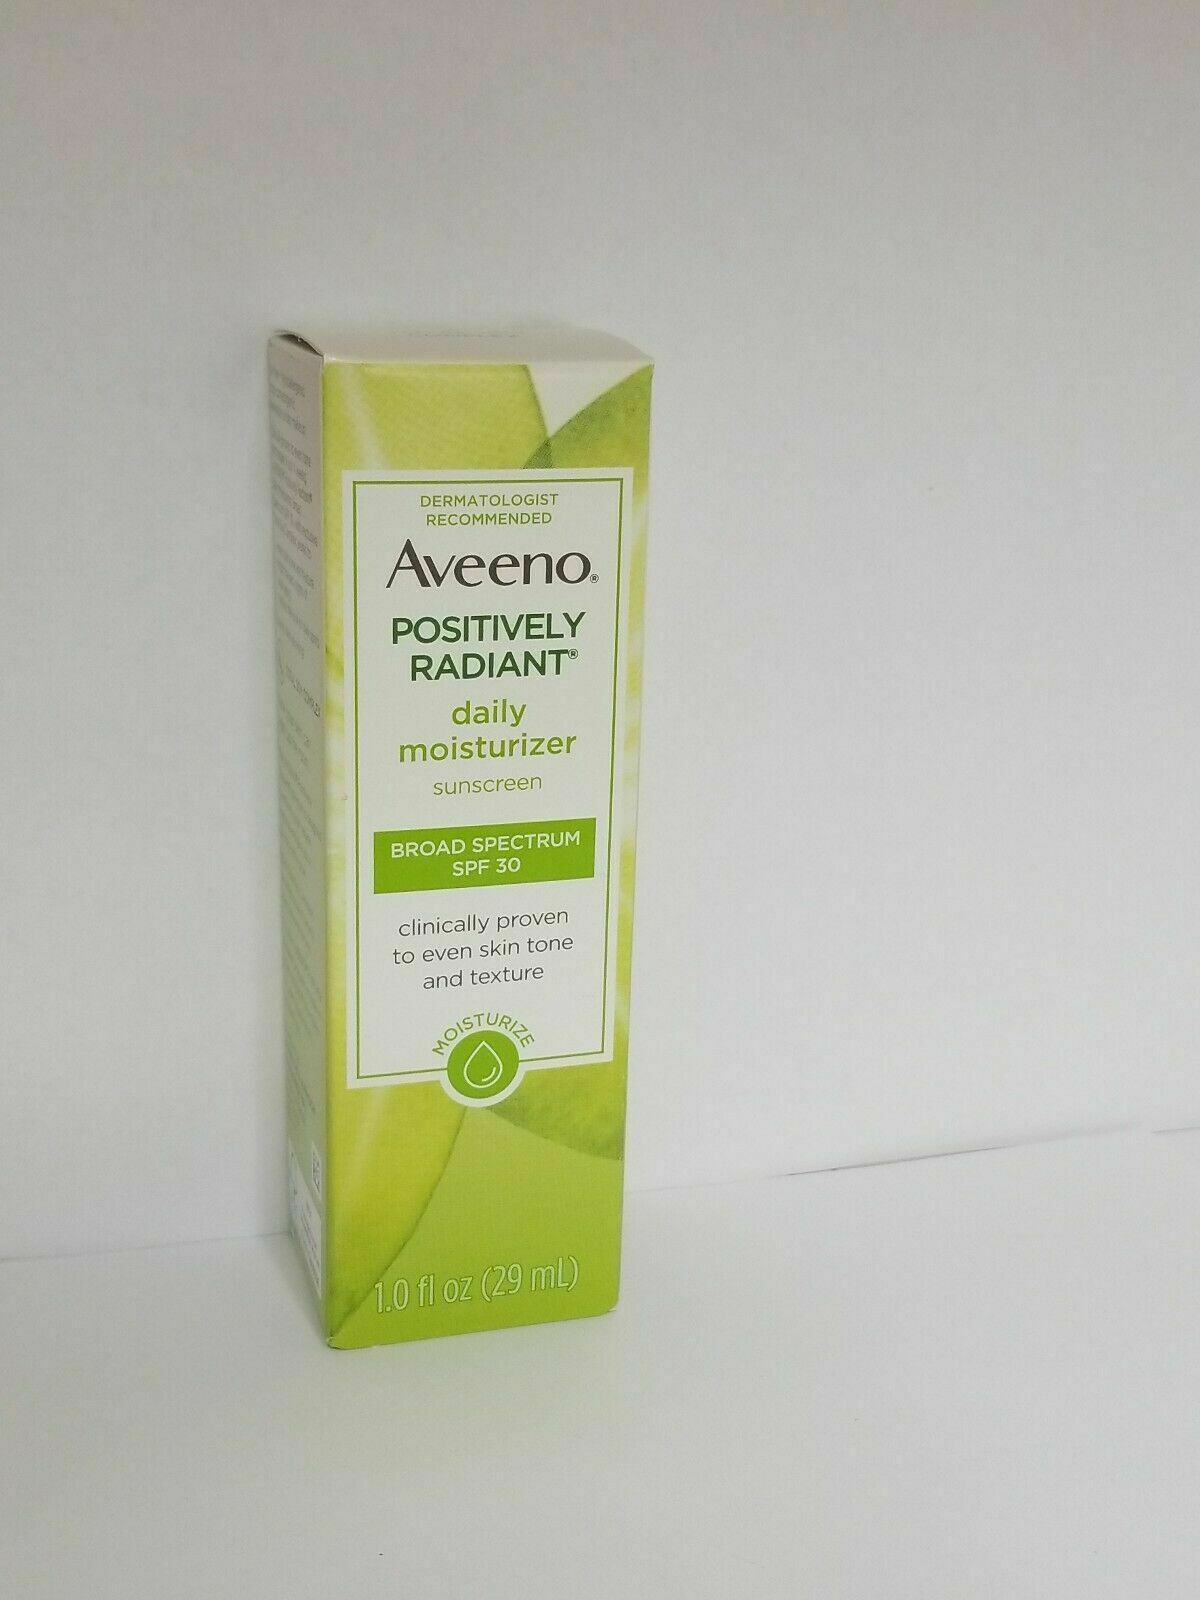 Aveeno Positively Radiant Daily Moisturizing Sunscreen Broad Spectrum SPF 30 - $19.79